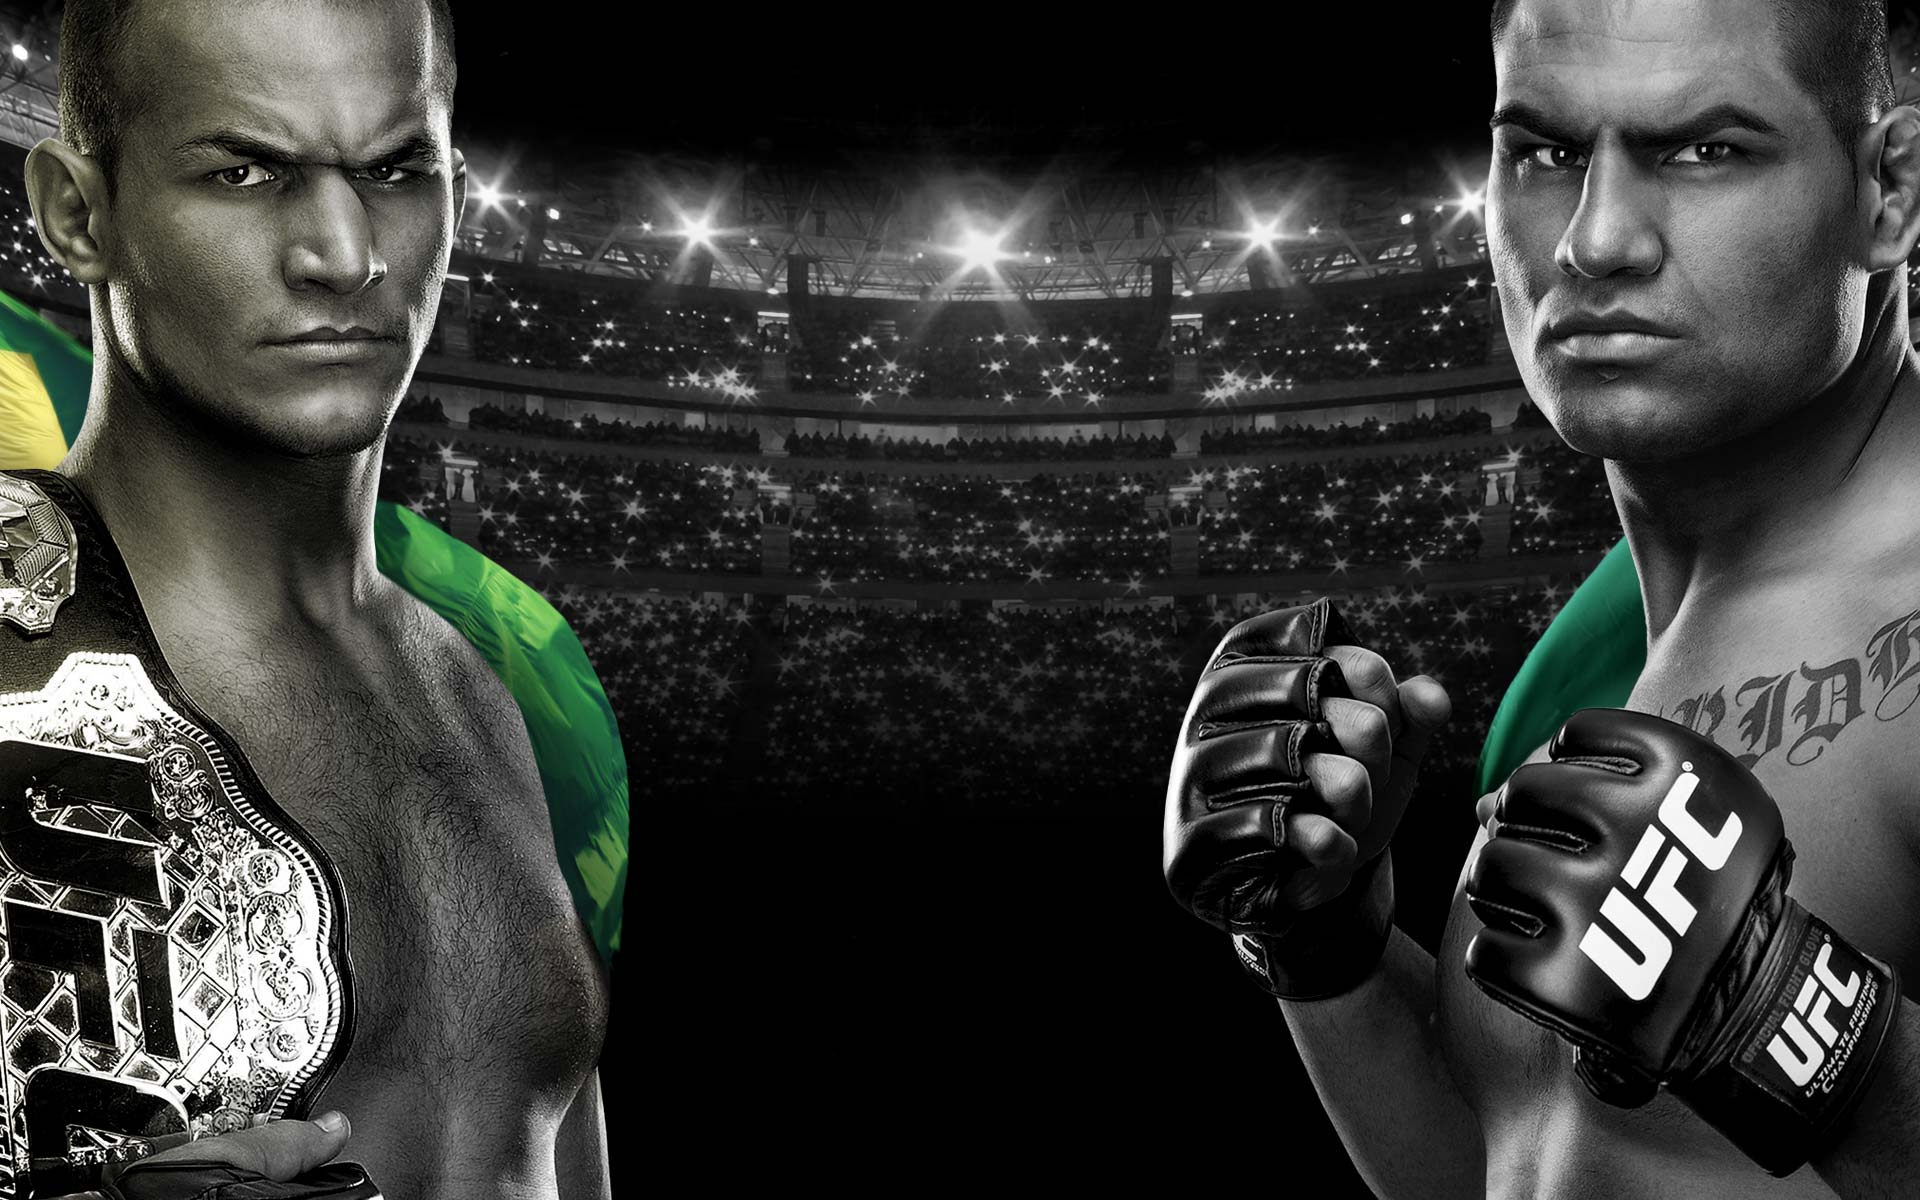 Ufc mixed martial arts mma fight extreme m wallpaper 1920x1200 85494 wallpaperup - Free ufc wallpapers ...